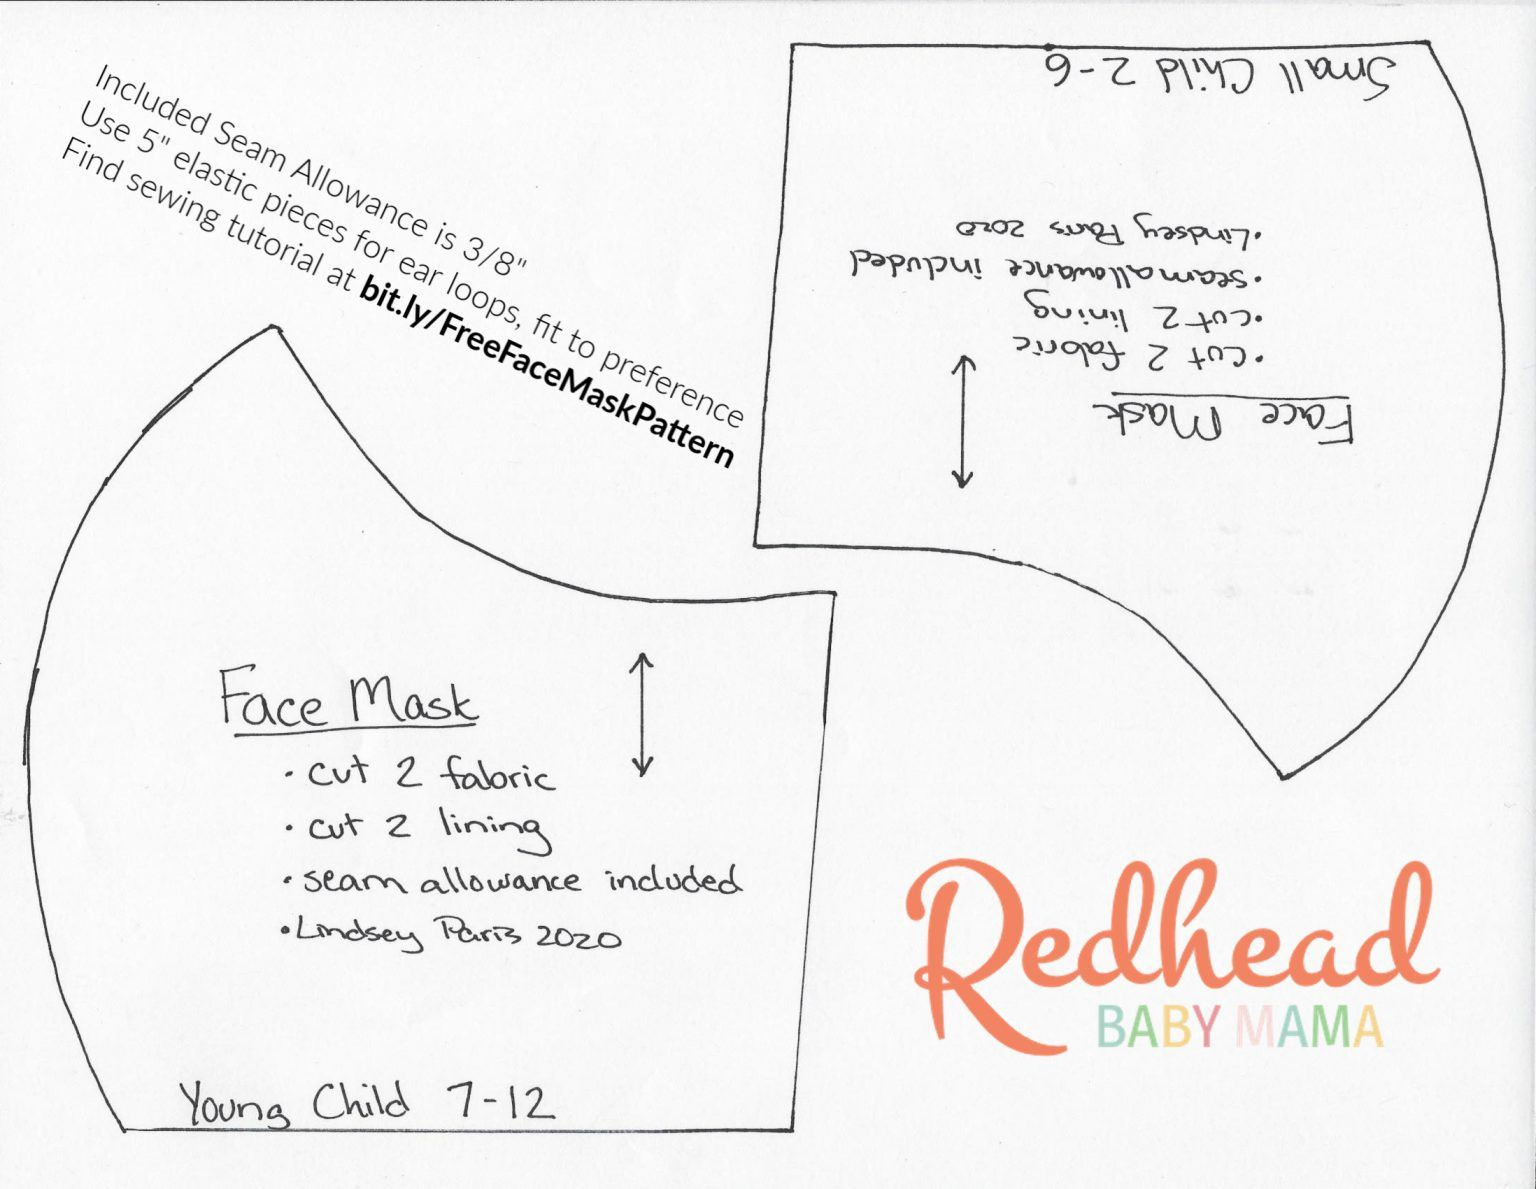 Free Face Mask Pattern Diy Tutorial With Pocket For Surgical Insert Redhead Baby Mama Atlanta Blogger In 2020 Easy Face Mask Diy Redhead Baby Face Mask